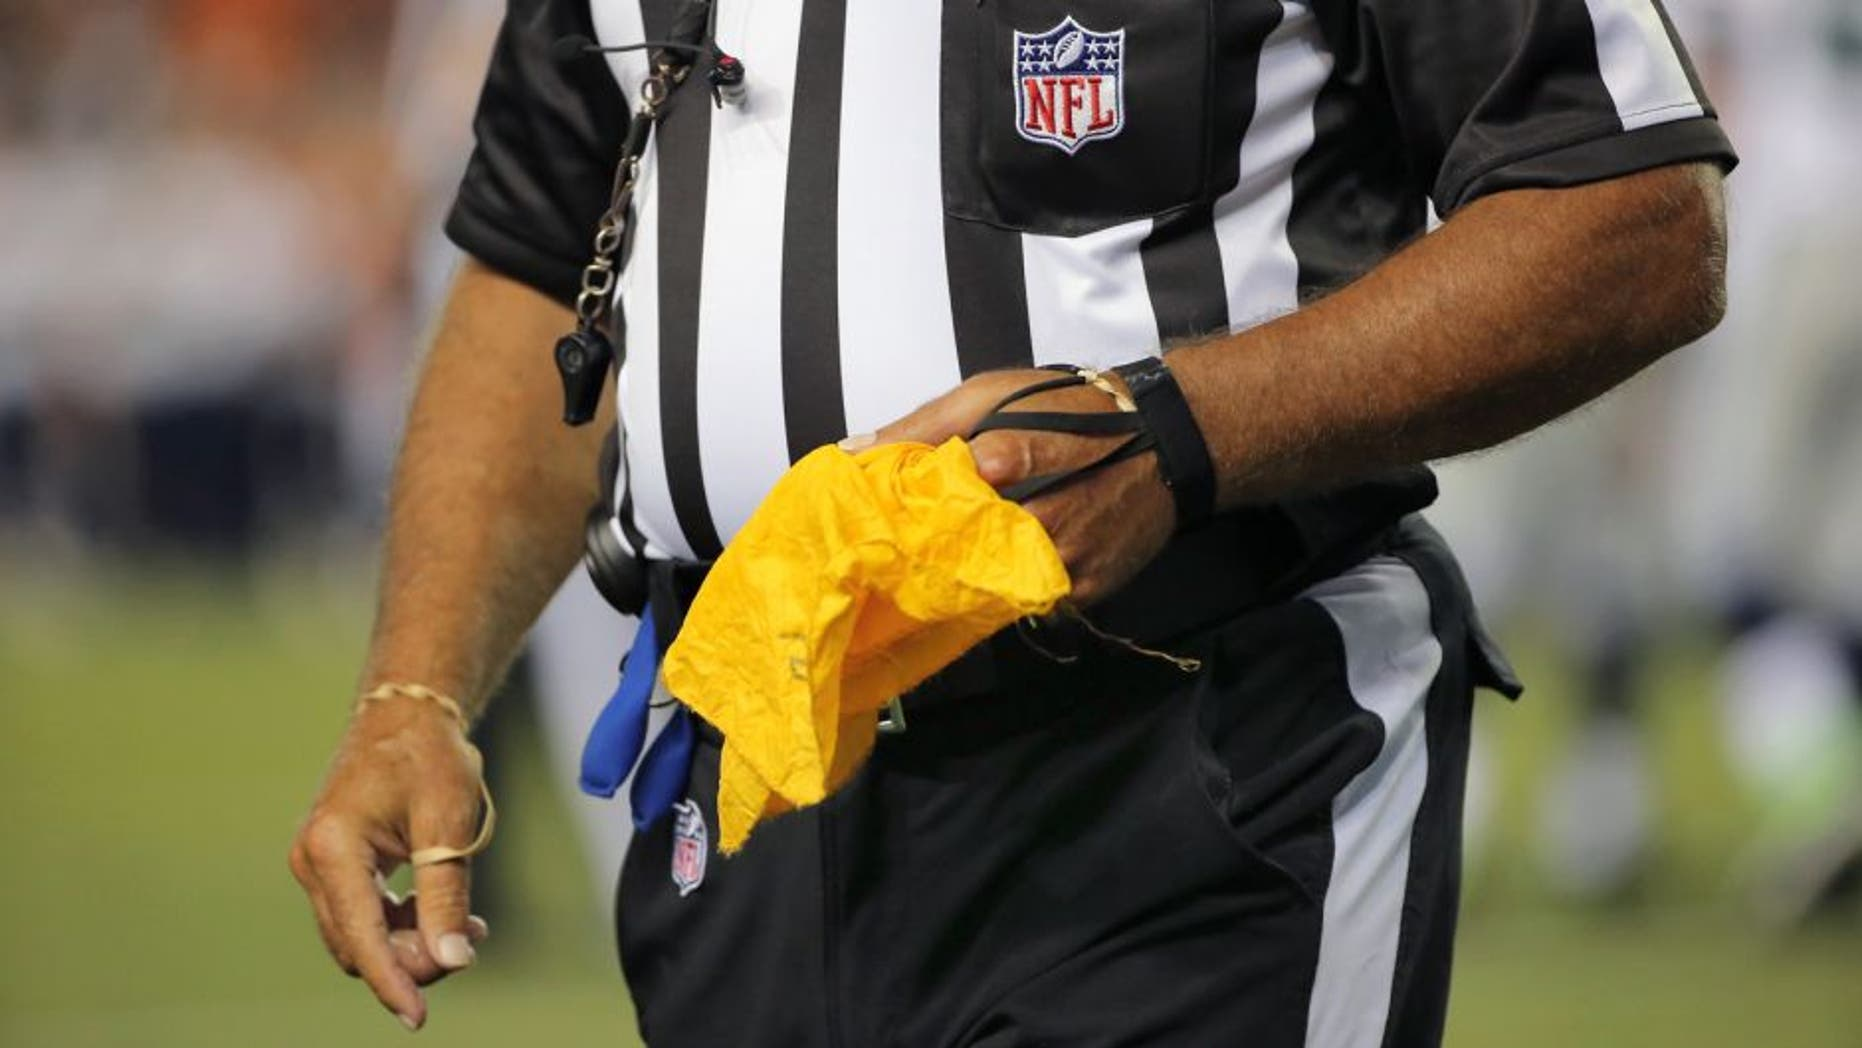 DENVER, CO - AUGUST 07: A referee collects his penalty flag as the Seattle Seahawks face the Denver Broncos during preseason action at Sports Authority Field at Mile High on August 7, 2014 in Denver, Colorado. The Broncos defeated the Seahawks 21-16. (Photo by Doug Pensinger/Getty Images)